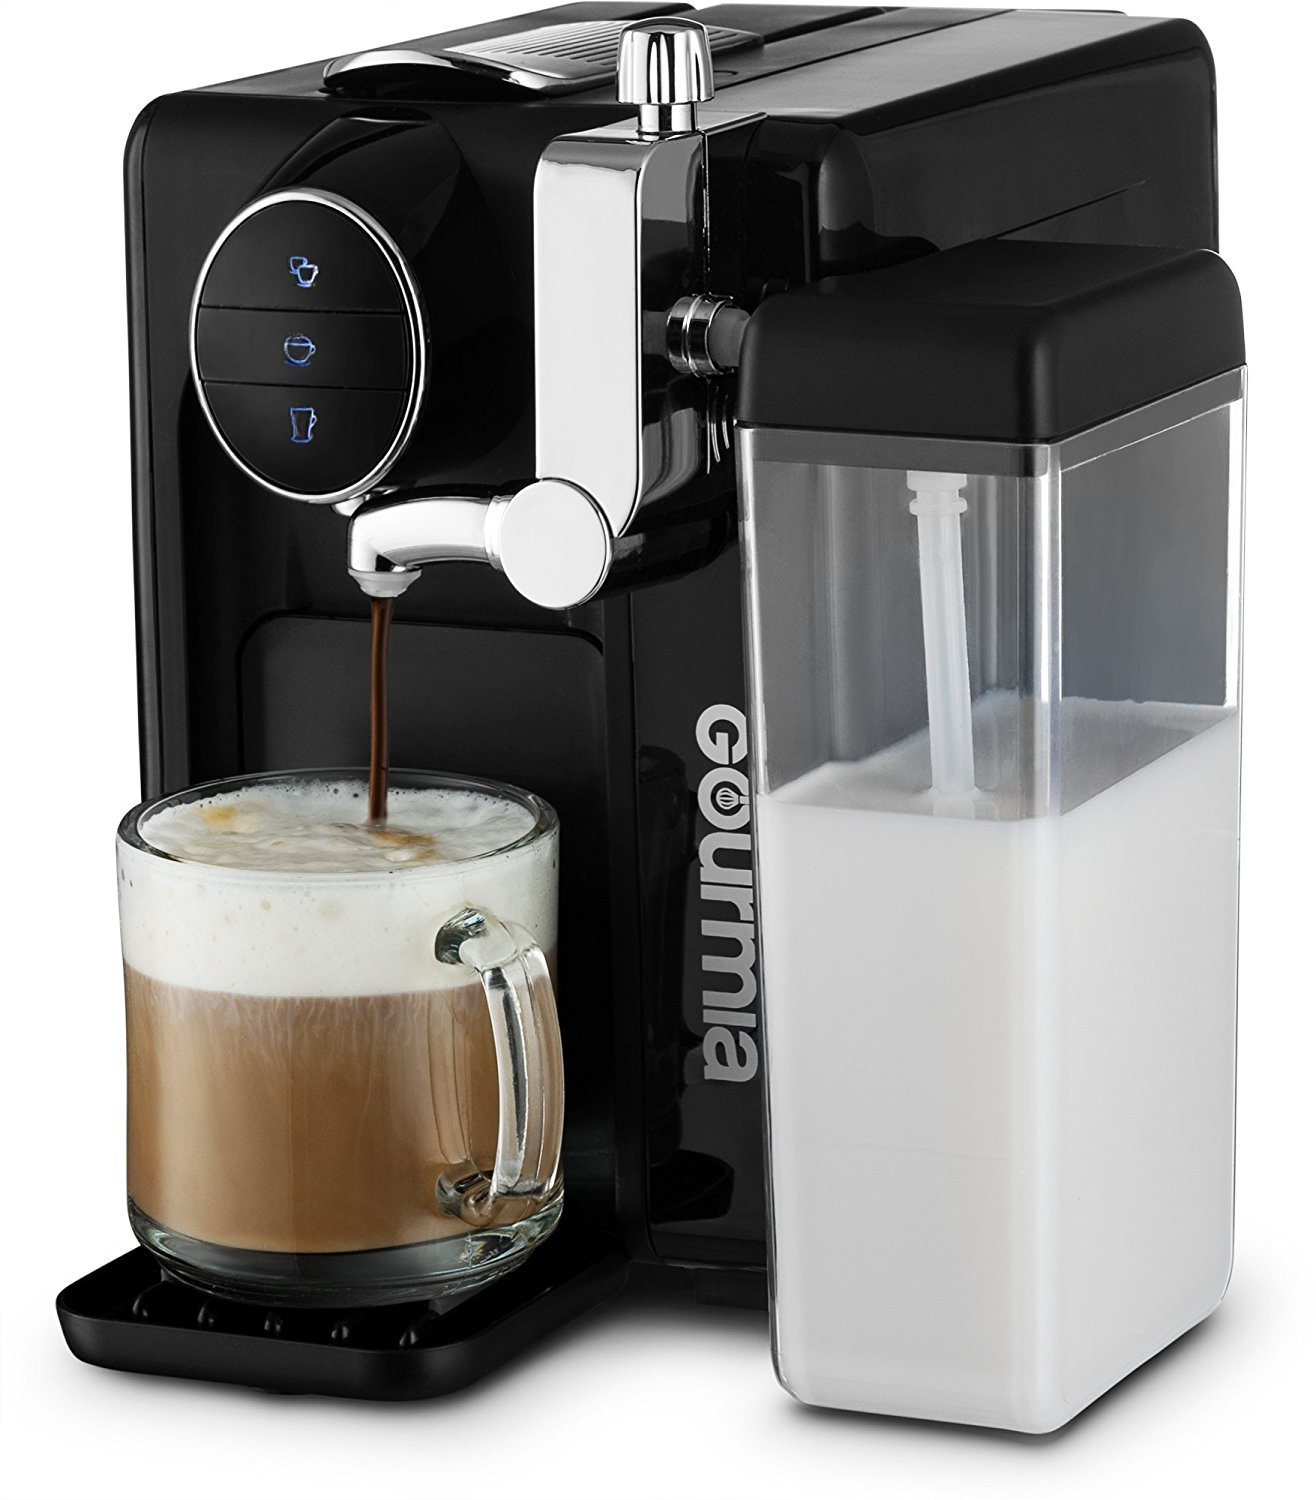 Italian Automatic Coffee Maker : The 6 Best Espresso Machine Under 300 In 2017 - Reviews & Buyer Guide